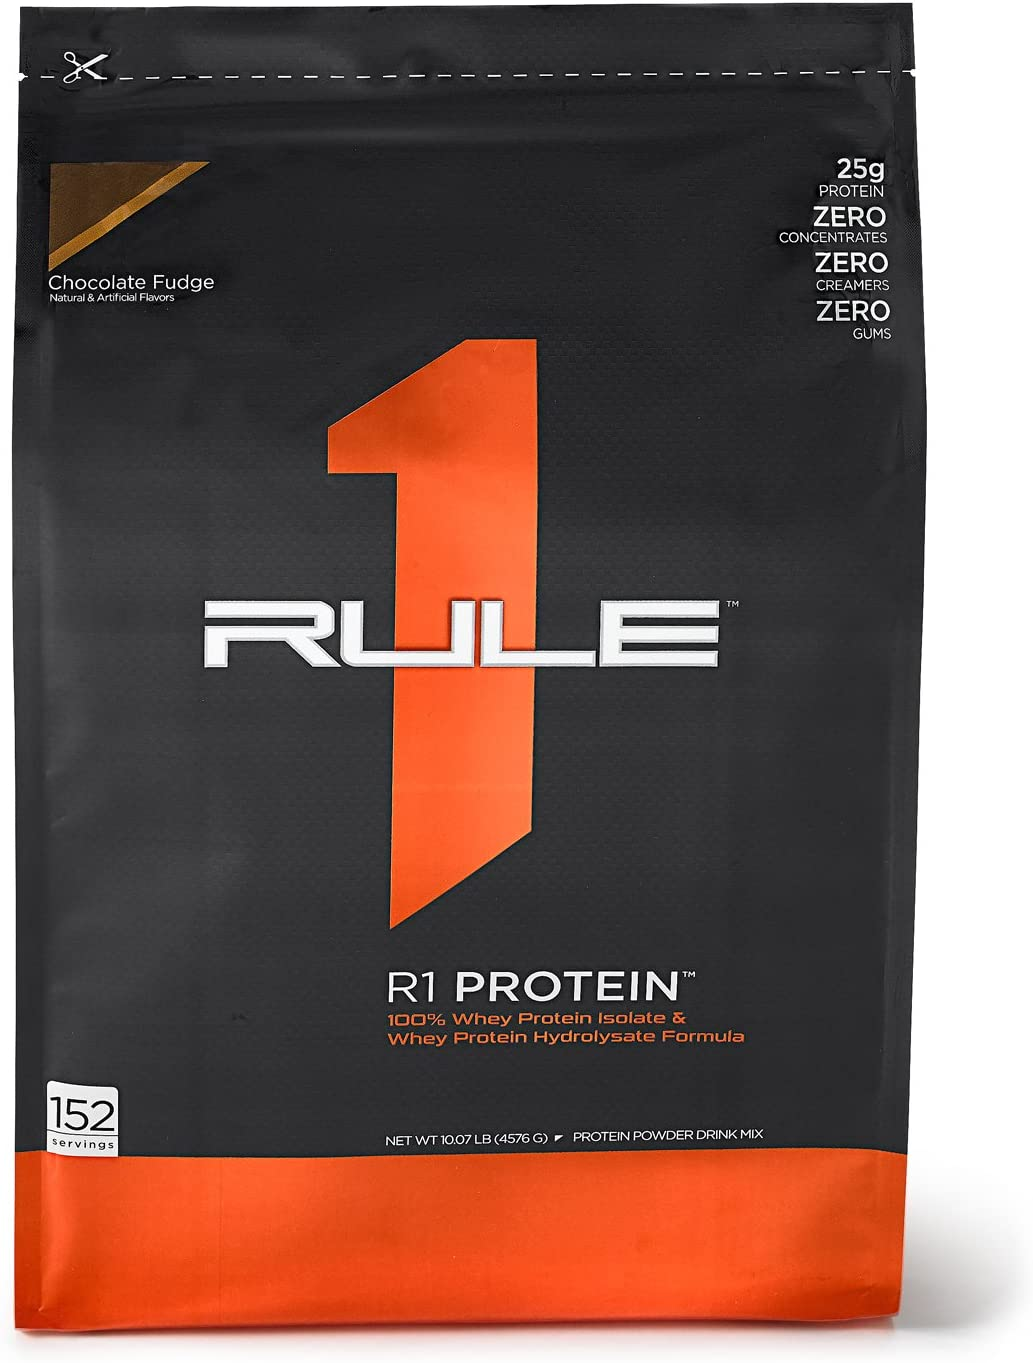 R1 Protein Whey Isolate Hydrolysate, Rule 1 Proteins 152 Servings, Chocolate Fudge